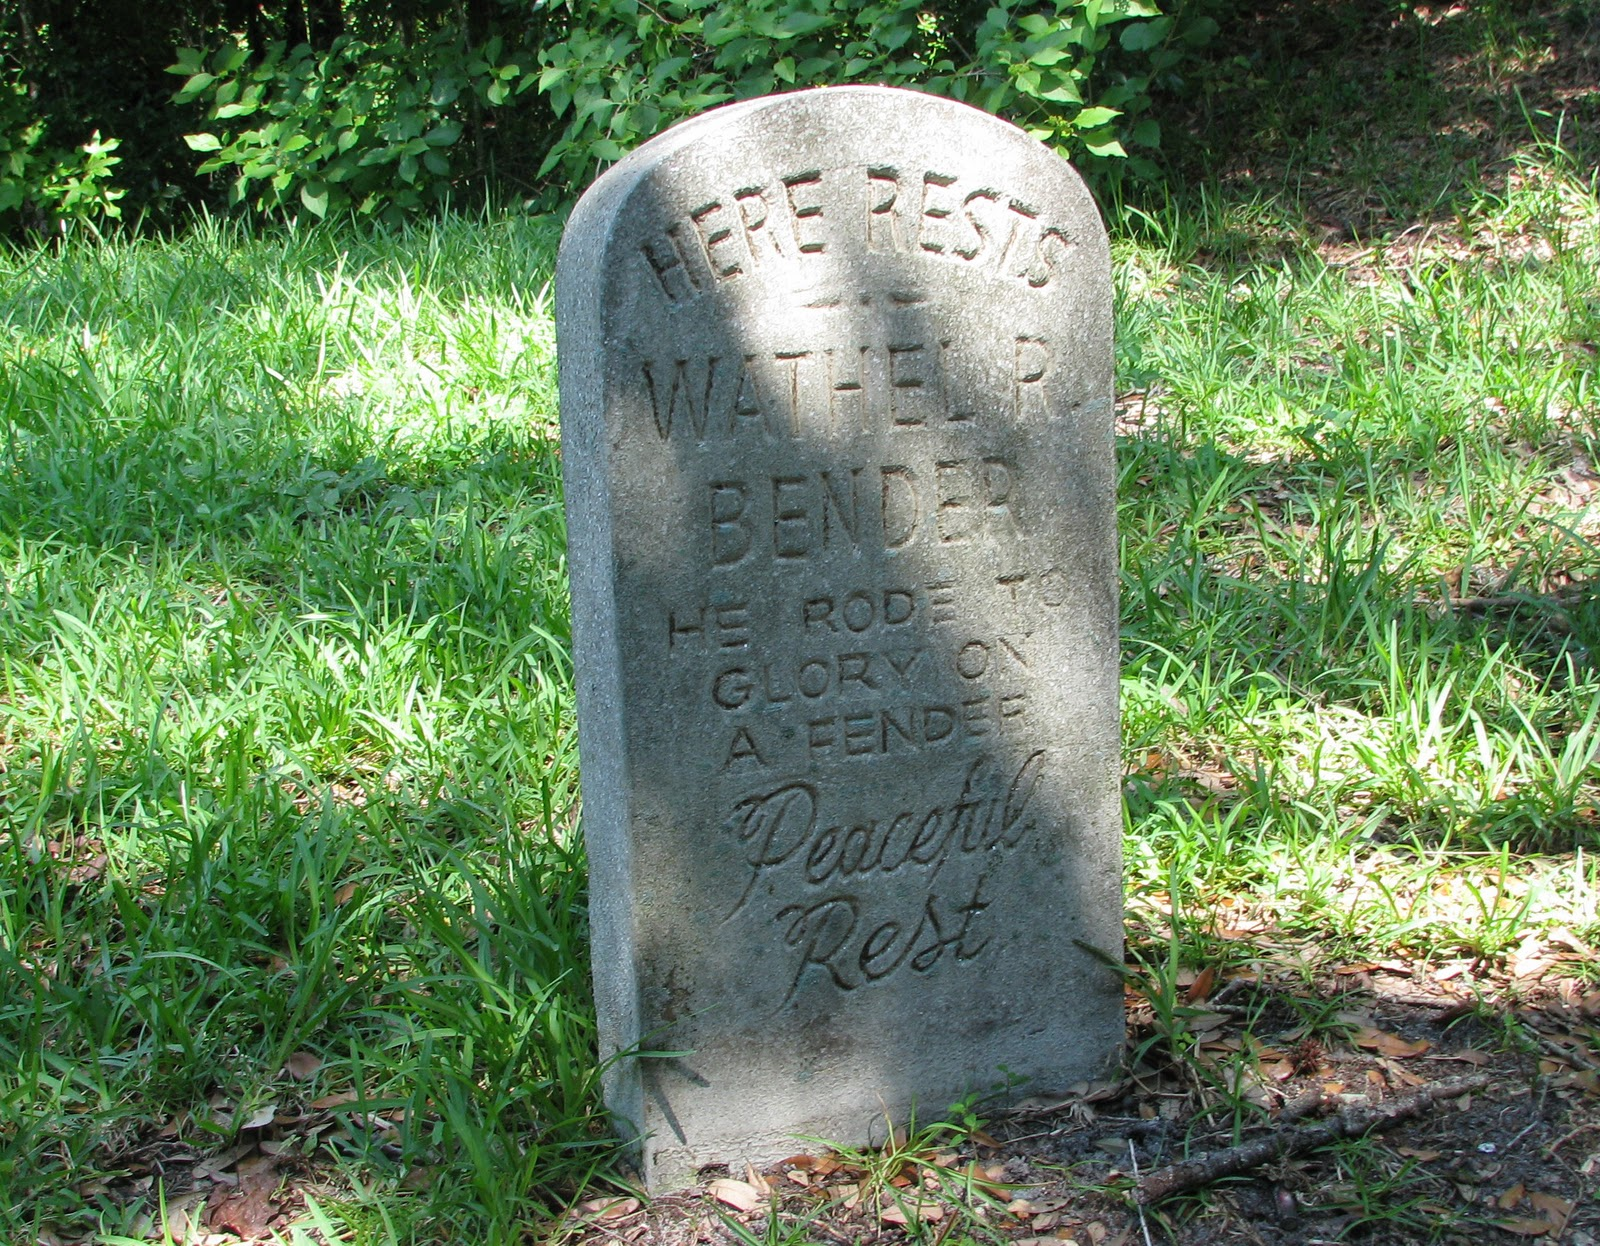 Disney World S Haunted Mansion Tombstone Secrets Disney World Blog Discussing Parks Resorts